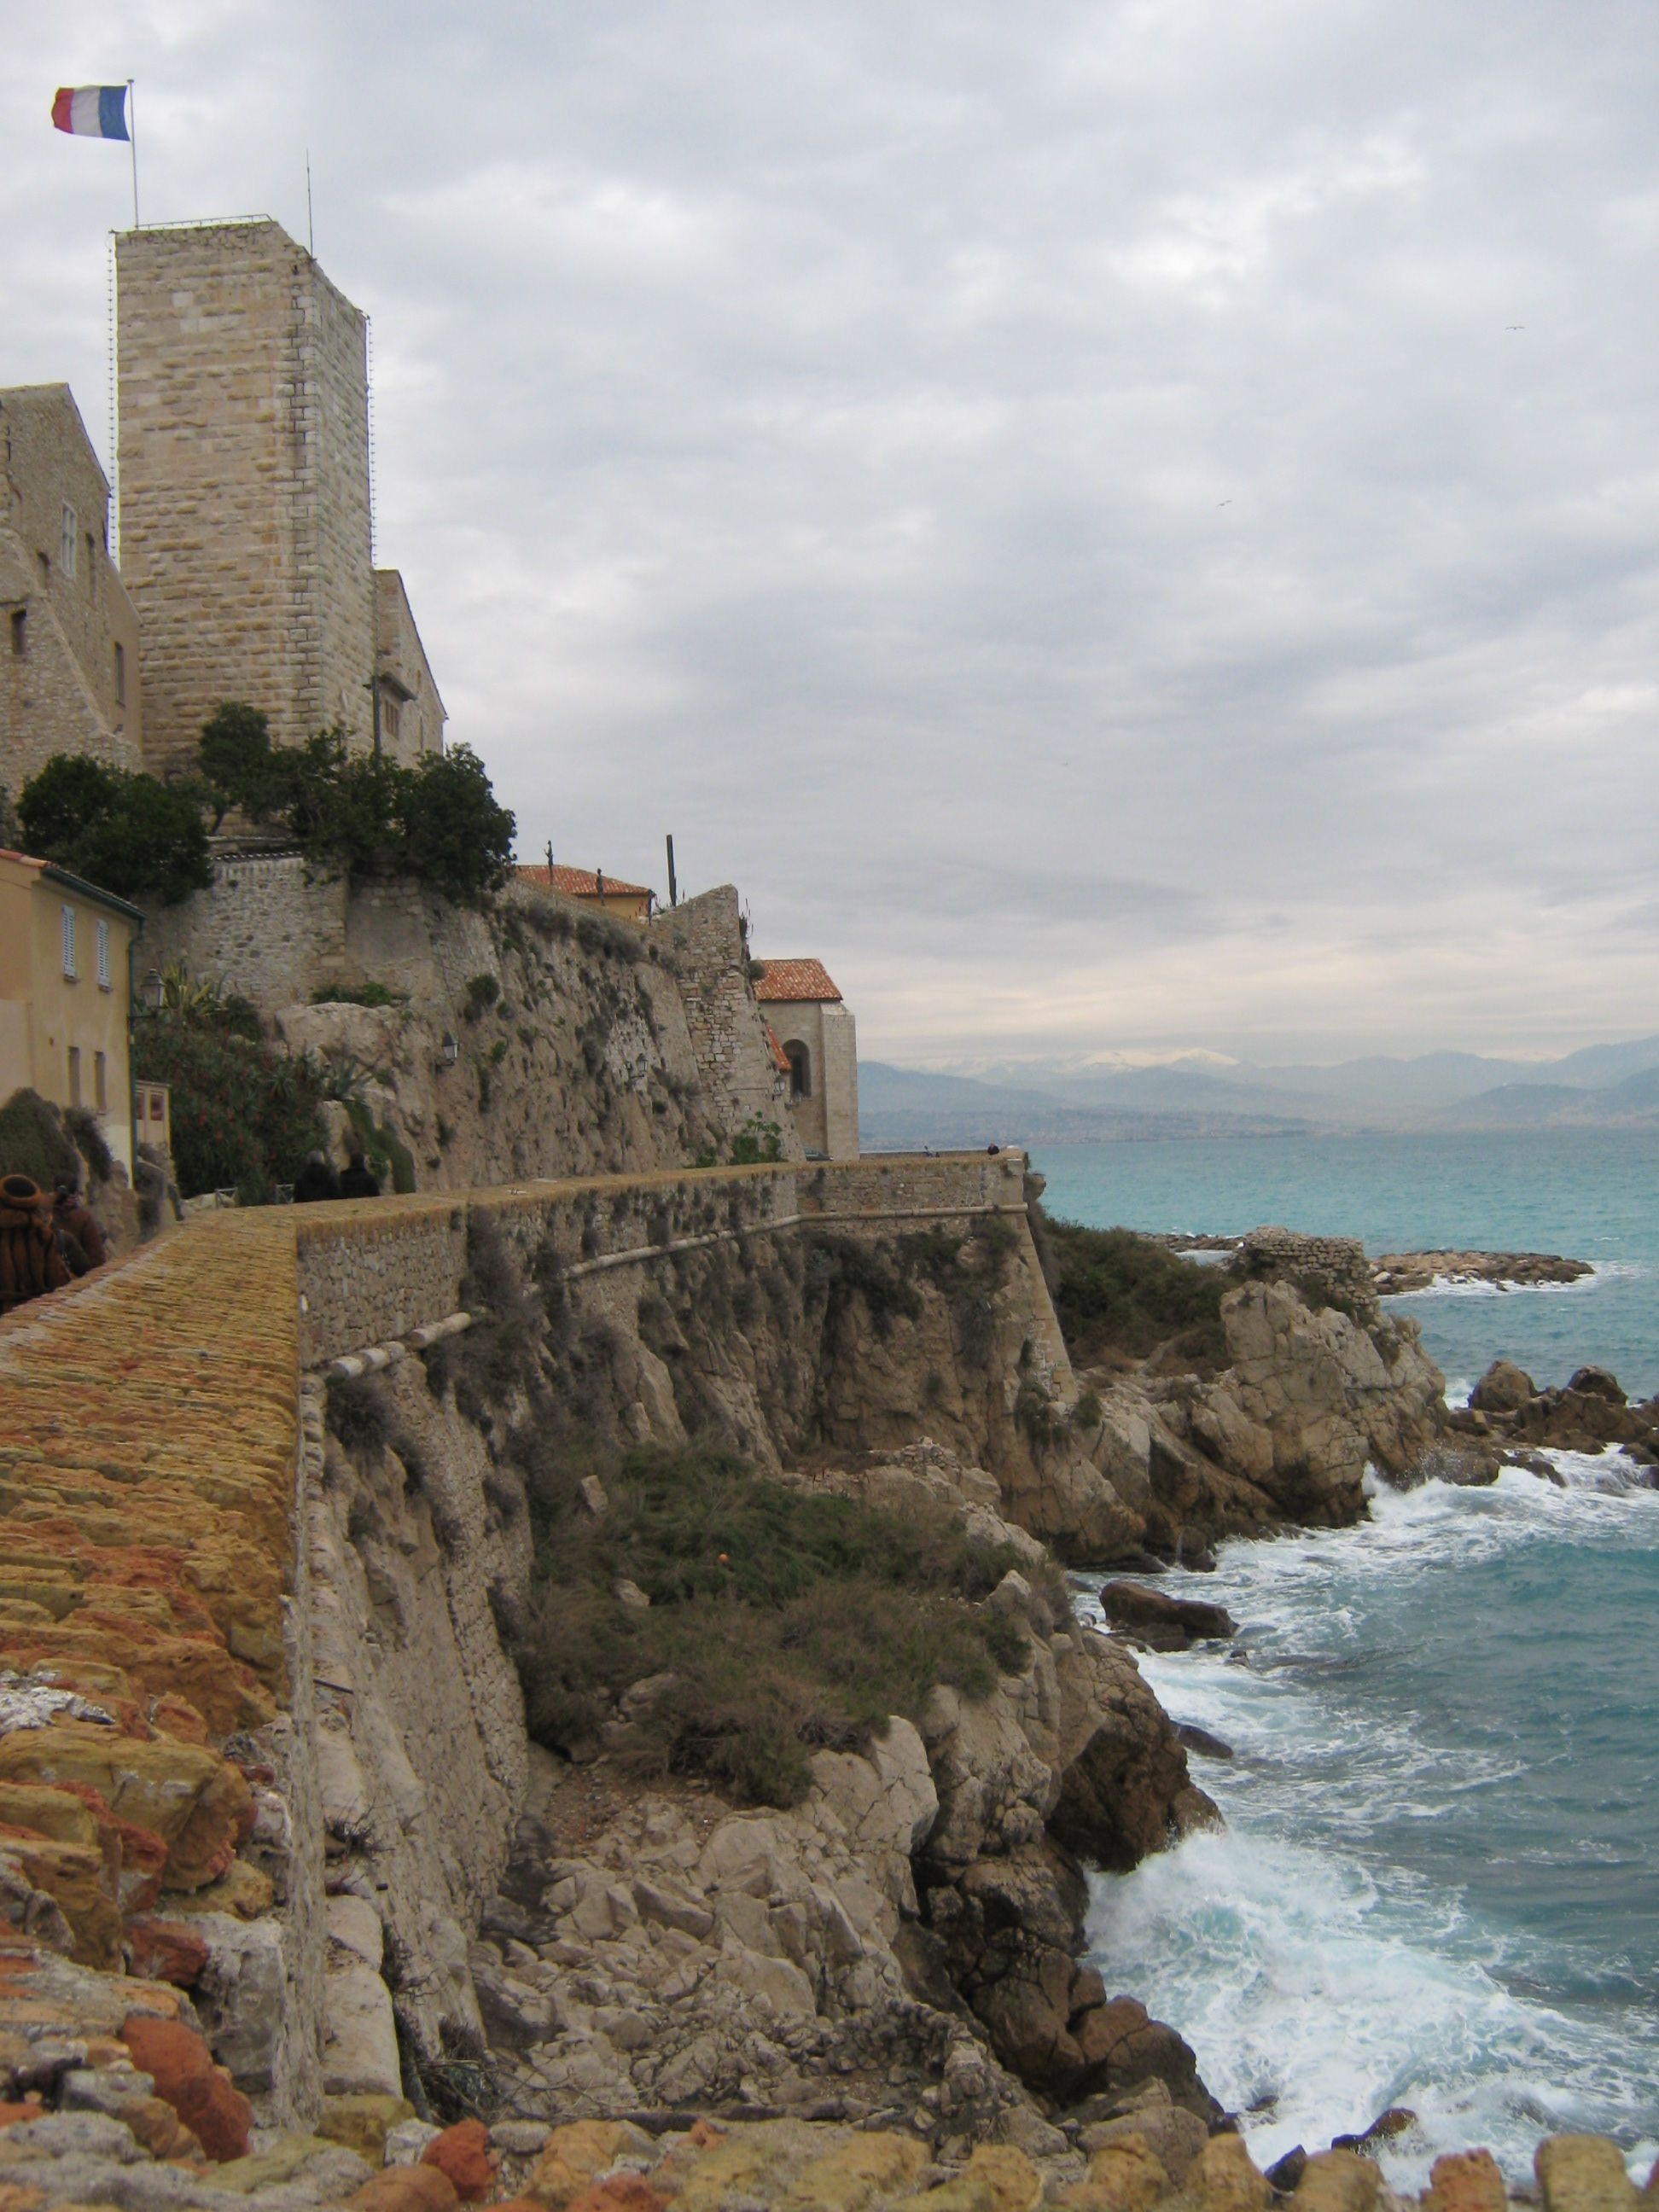 Antibes To Toulon Antibes France Where I Spent Many Summers As A Child Had A